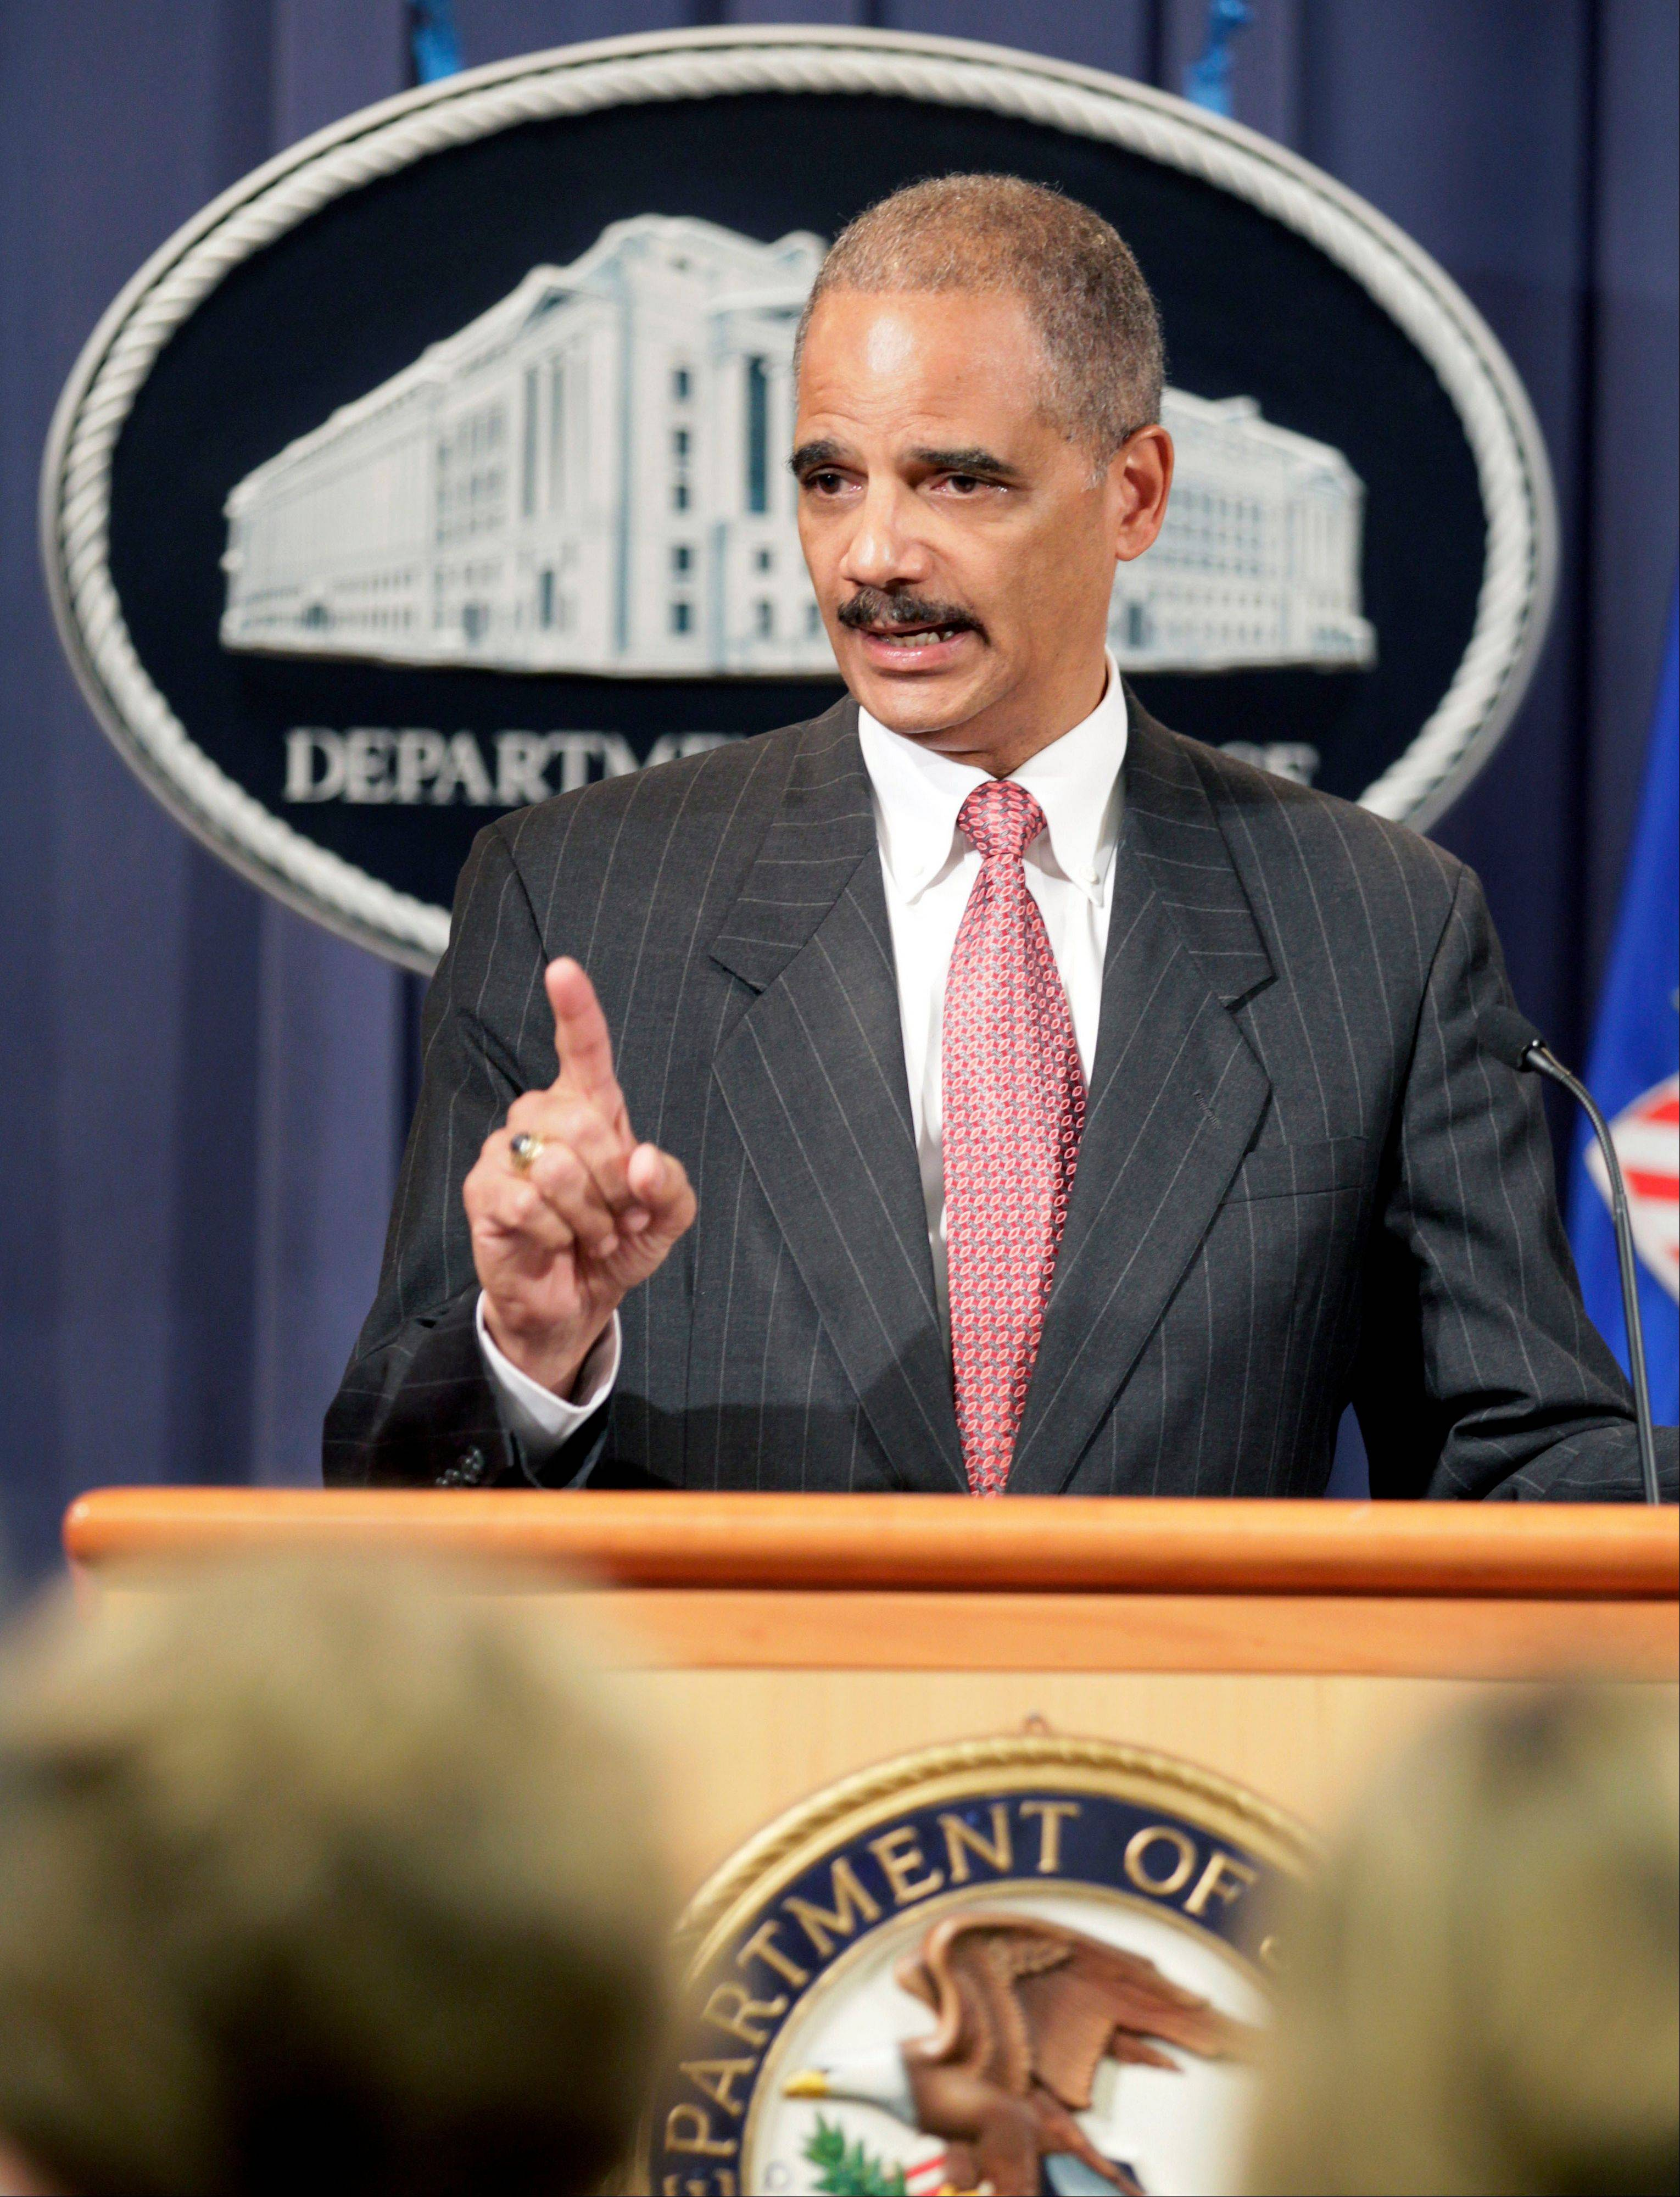 This Oct. 4, 2010 file photo shows Attorney General Eric Holder speaking during a news conference at the Justice Department in Washington. Holder is calling for major changes to the nation's criminal justice system that would scale back the use of harsh prison sentences for certain drug-related crimes, divert people convicted of low-level offenses to drug treatment and community service programs and expand a prison program to allow for release of some elderly, non-violent offenders.